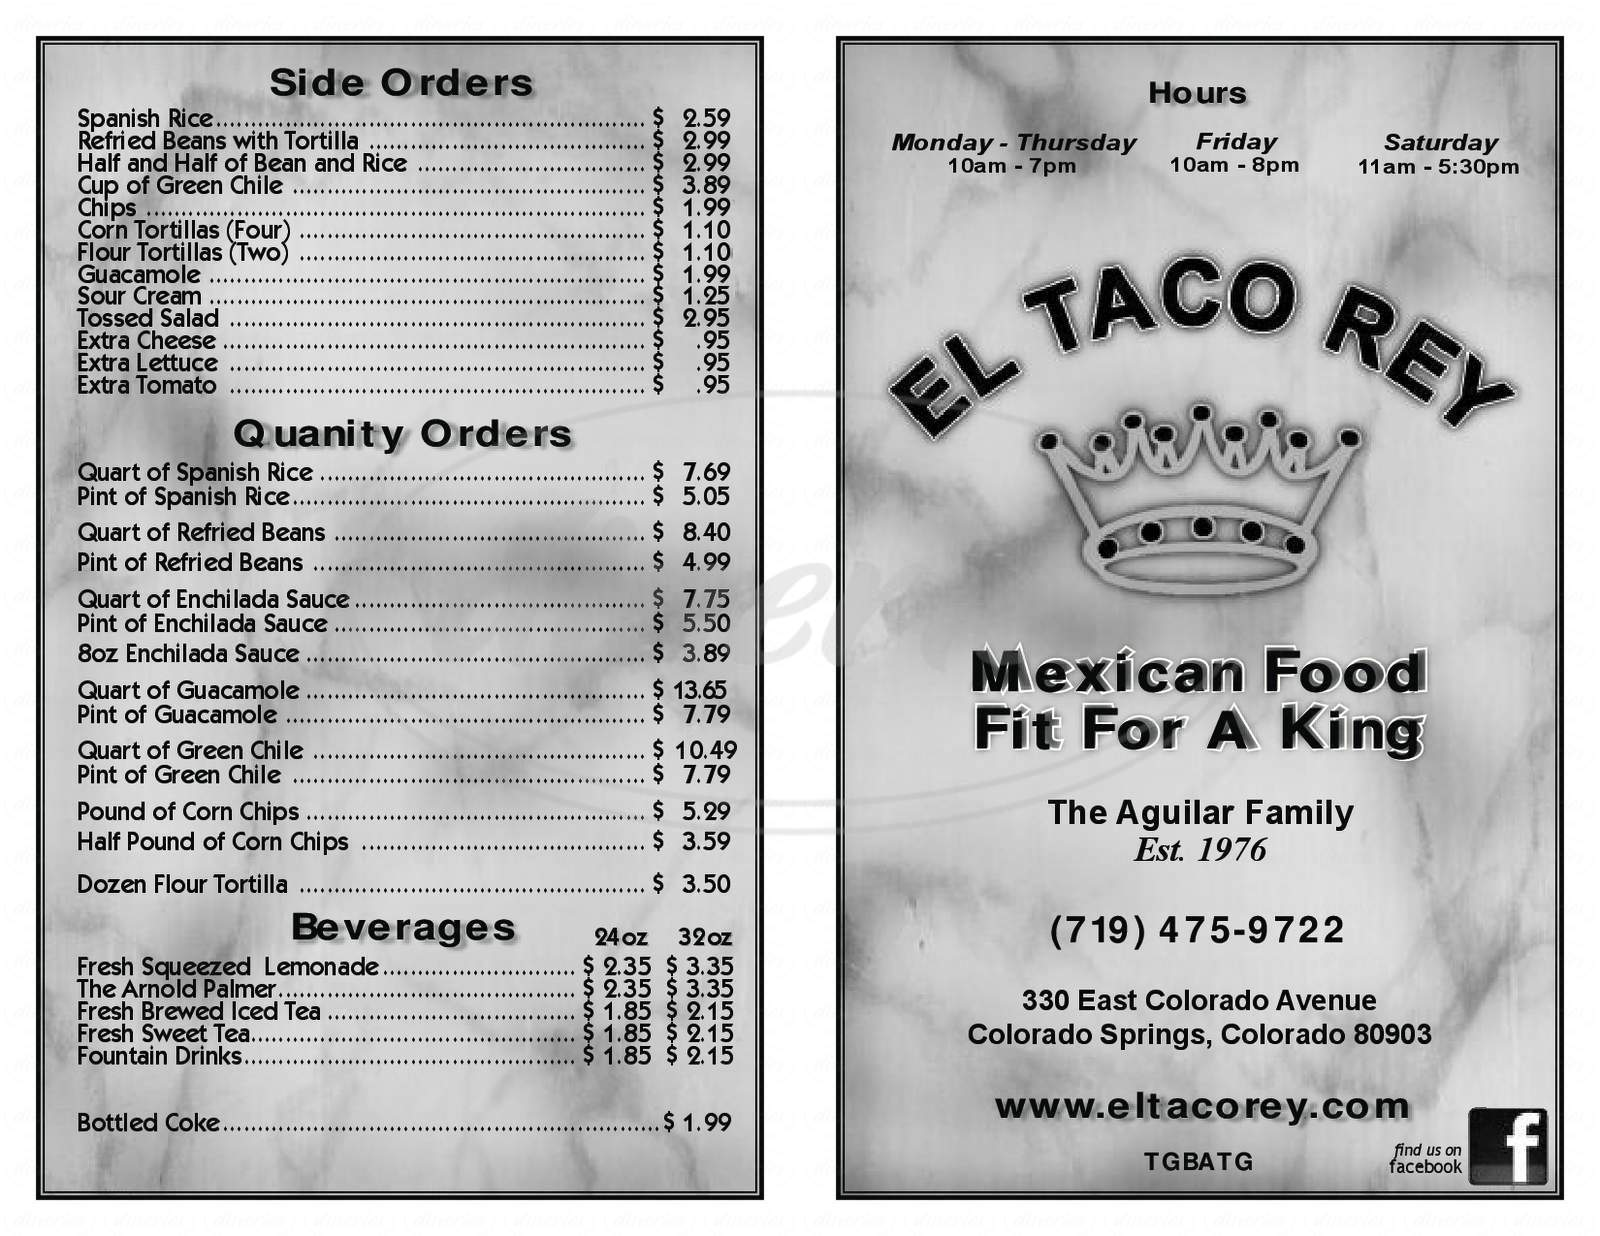 menu for El Taco Rey